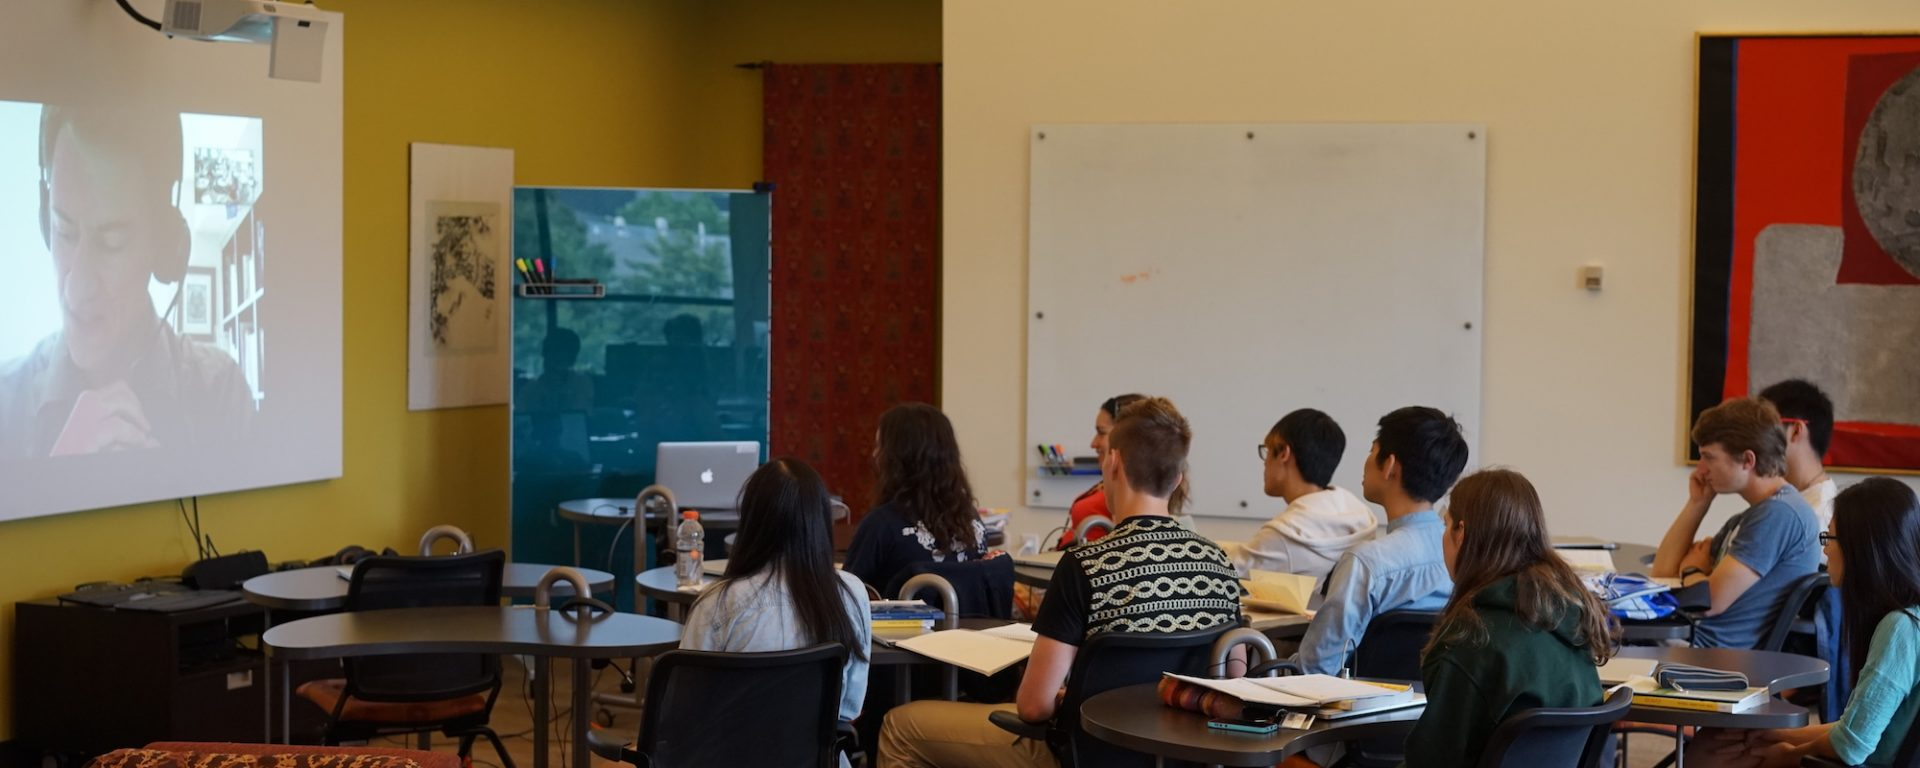 zoom video conferencing for remote teaching  u2013 swarthmore